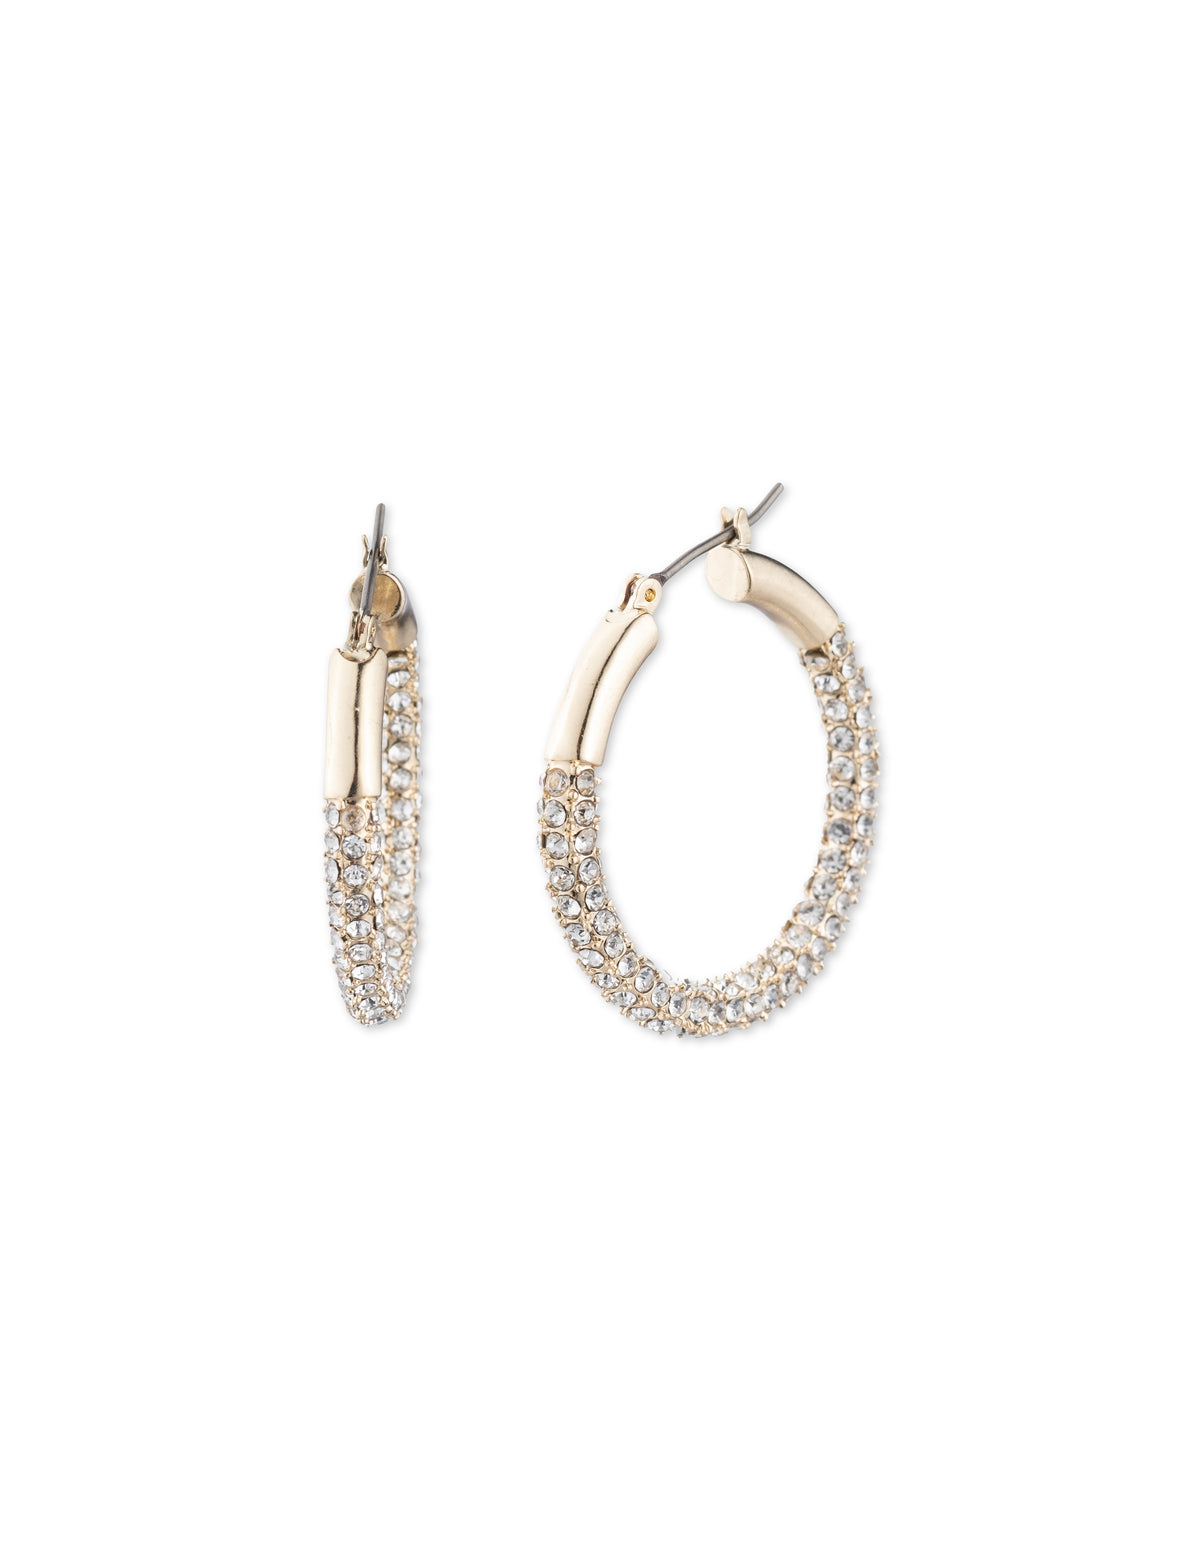 Gold-Tone Pave Crystal Hoop Earrings